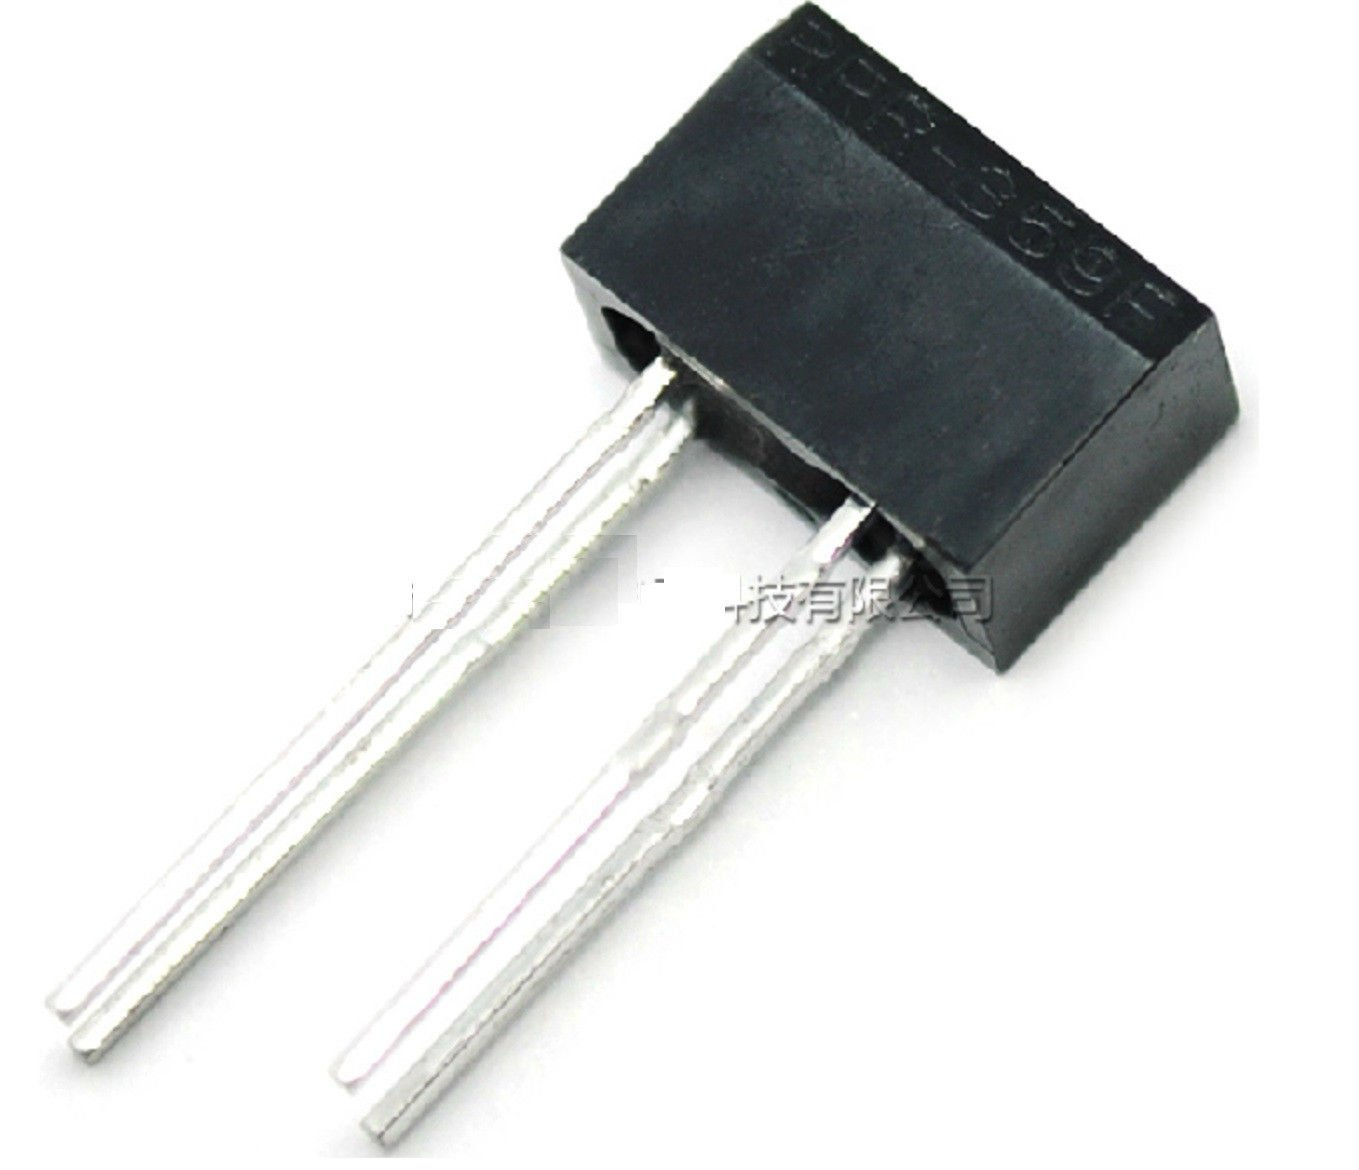 10pcs RPR359F ROHM Reflective Photoelectric Detector Photose infrared sensor AB